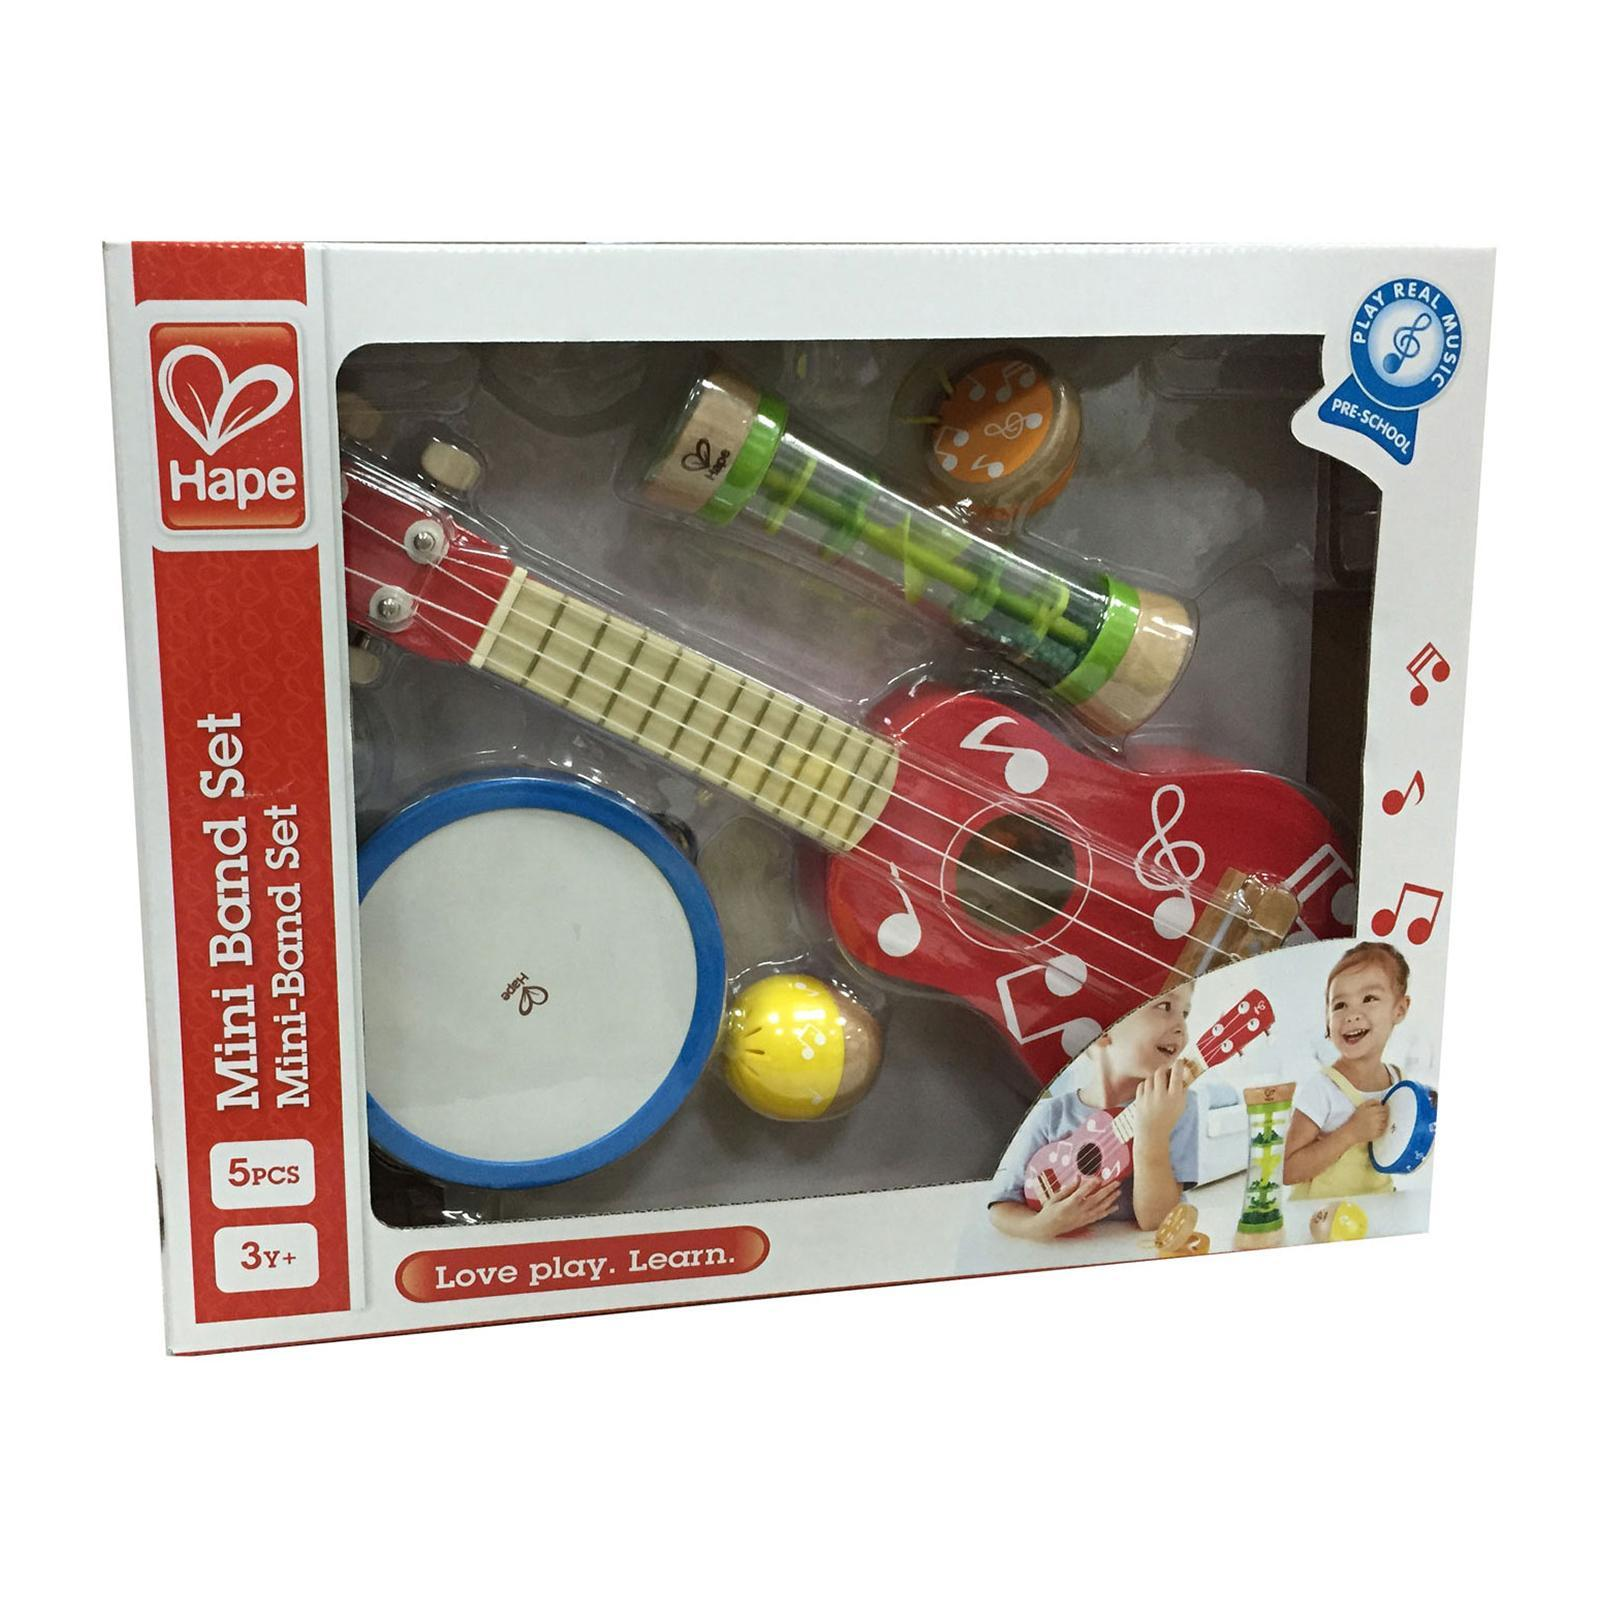 Latest Hape Kids Musical Toys Products Enjoy Huge Discounts